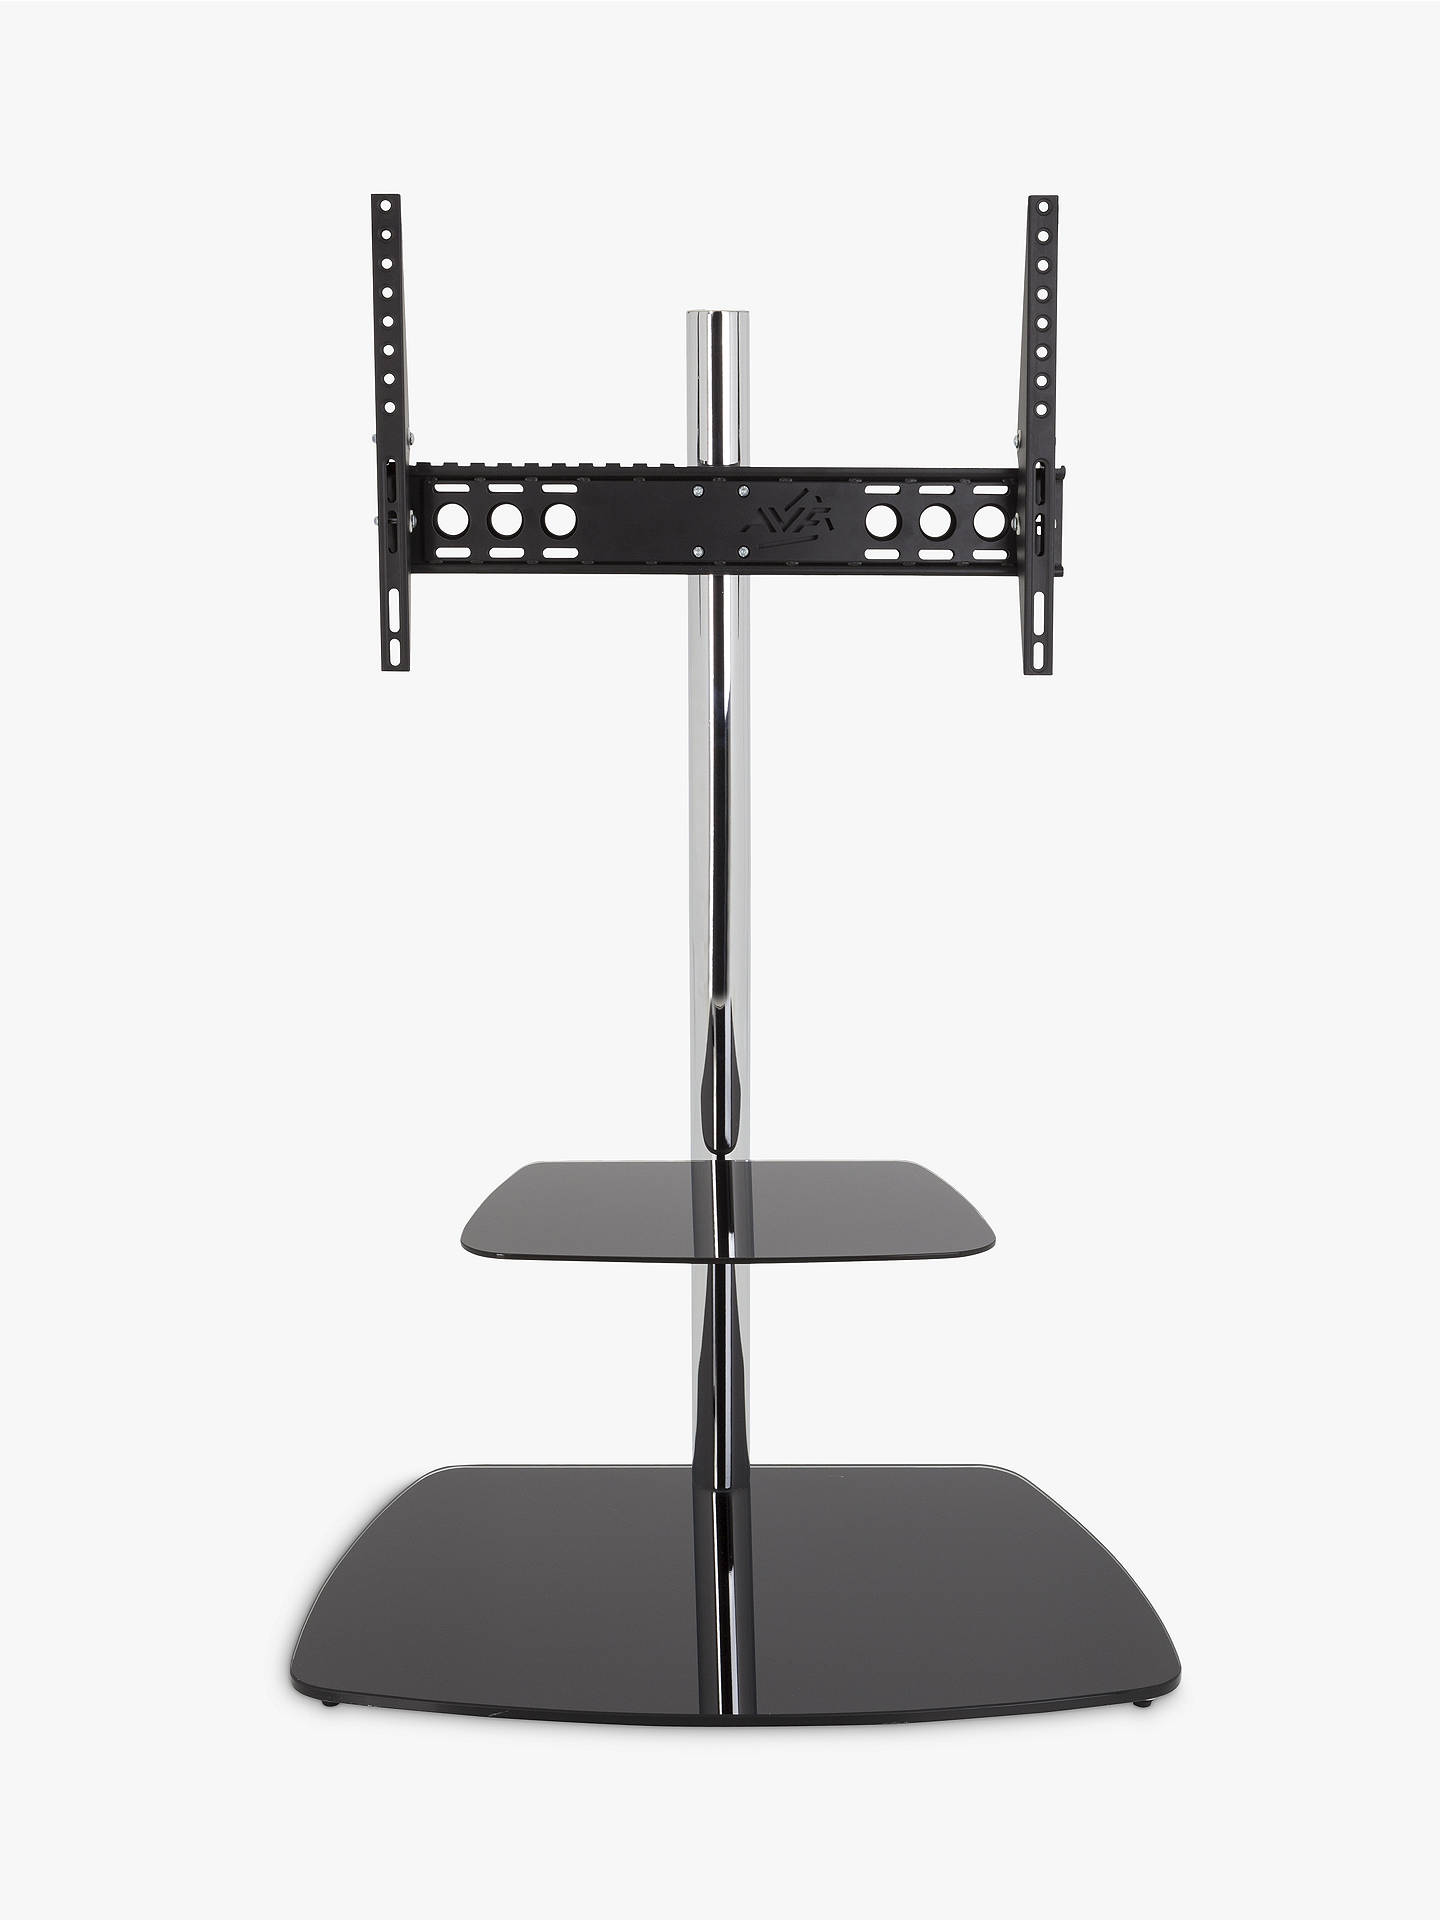 Avf Reflections Iseo 800 Tv Stand With Mount For Tvs 32 70 At John